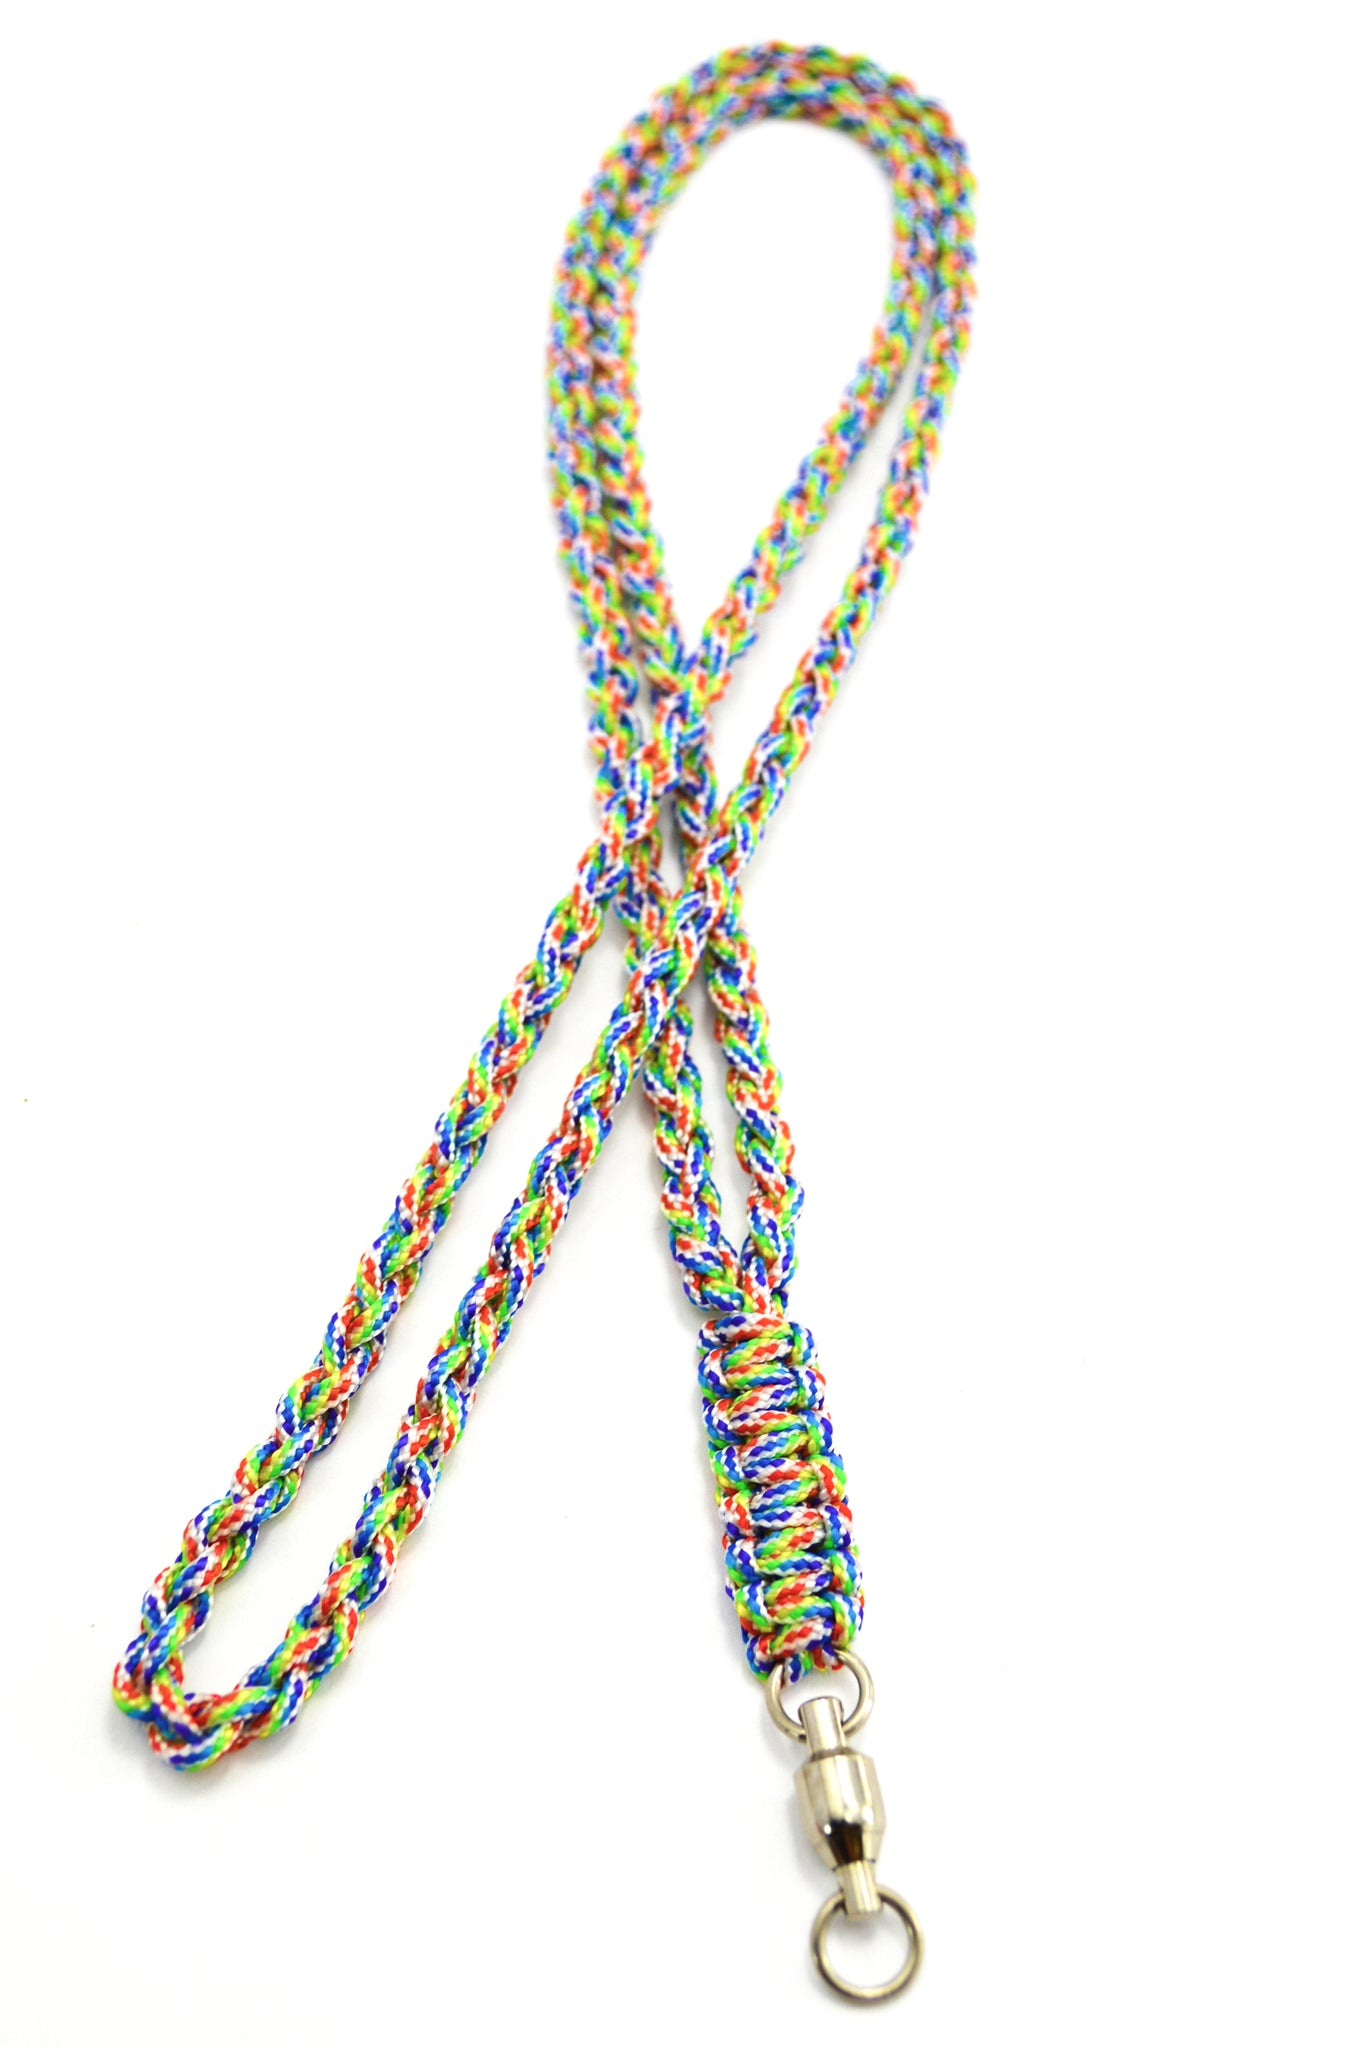 Nano Lanyard - We are One